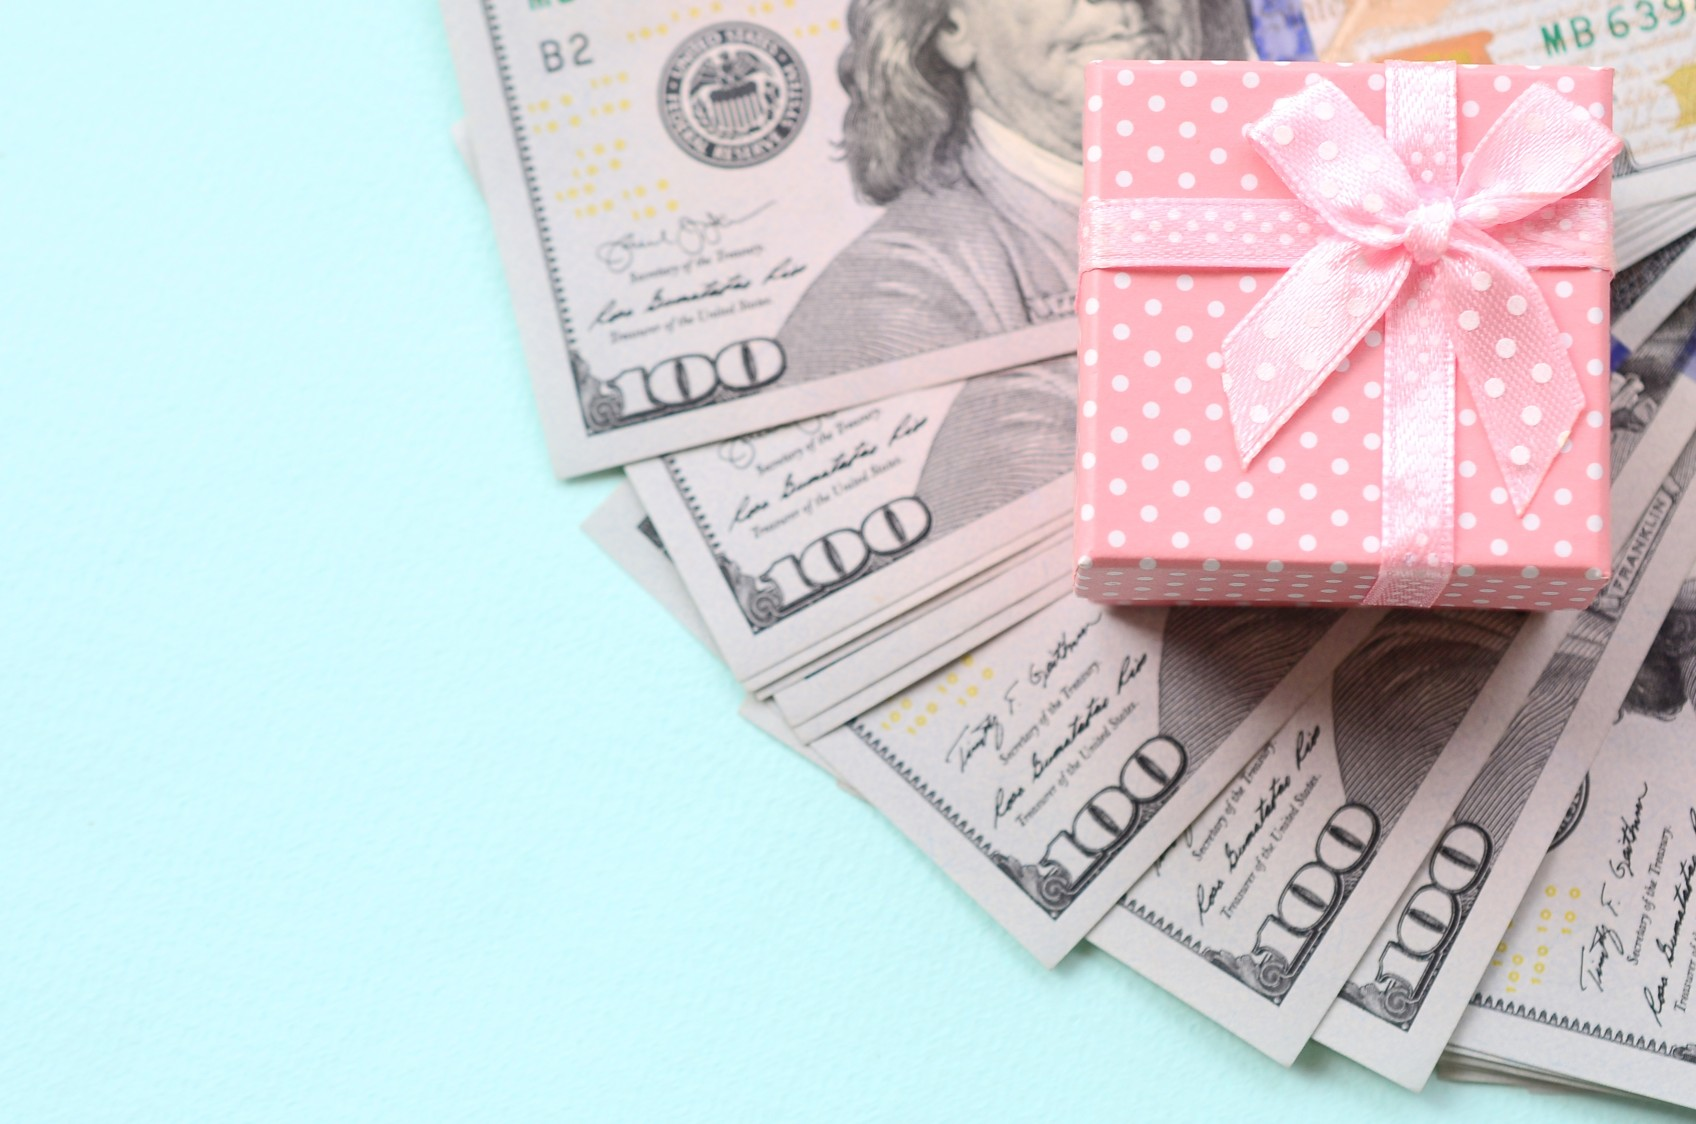 money-gift-box-dollar-cash-bow-white-isolated-present-bill-hundred-paper-currency-finance-ribbon_t20_RzAP8J